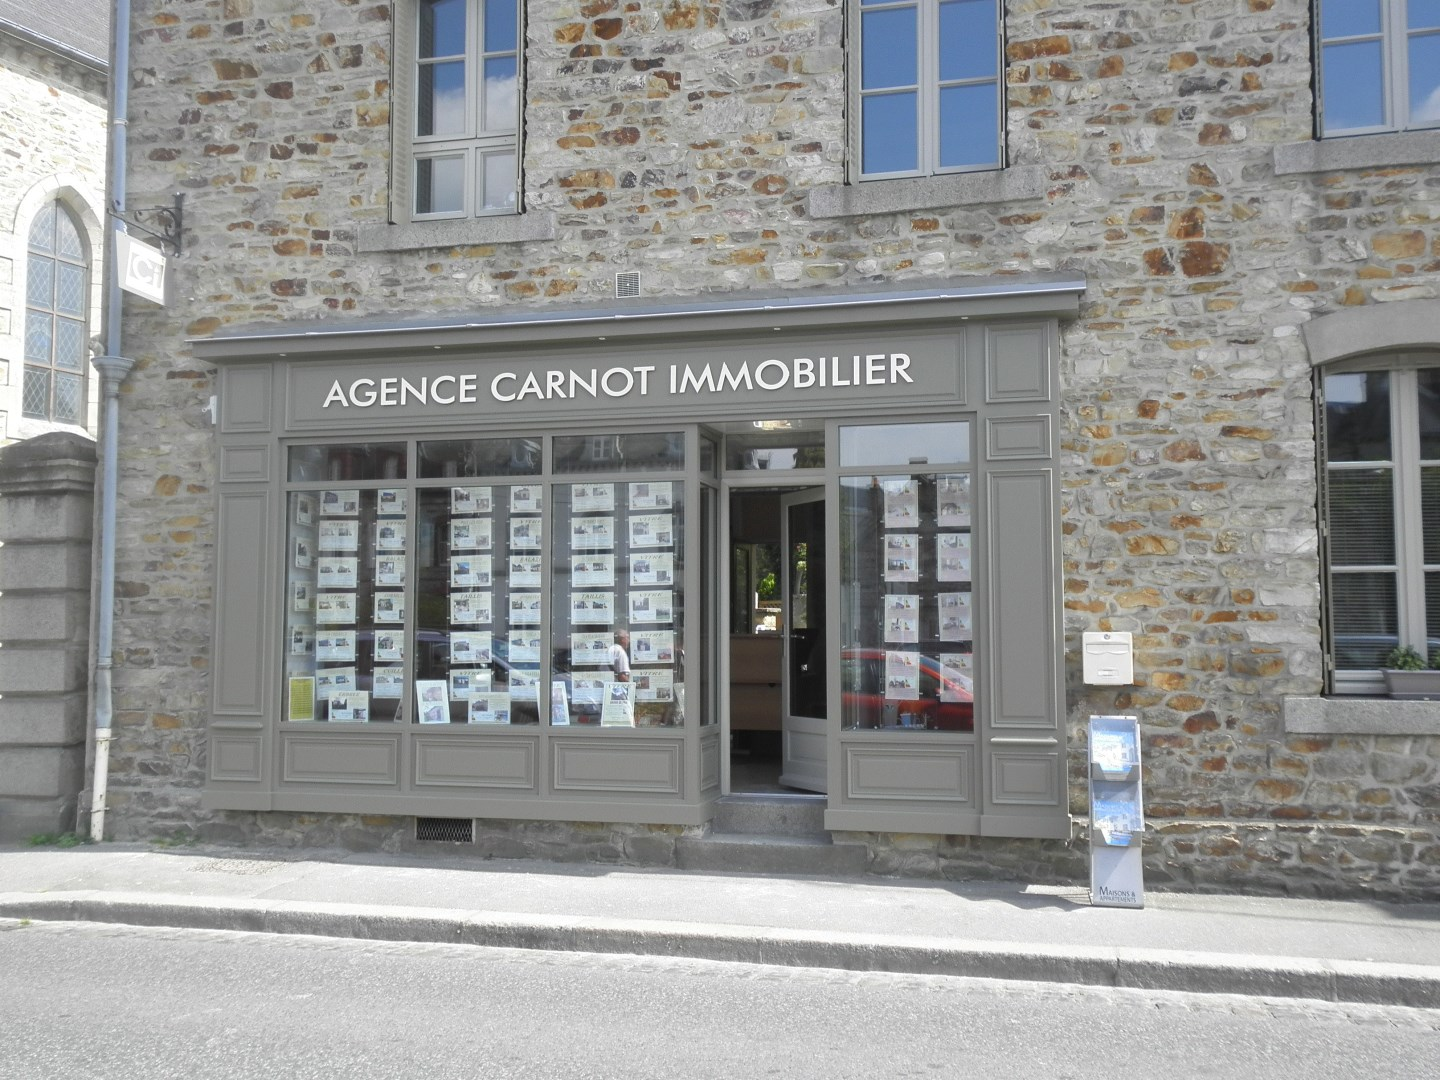 Carnot immobilier sarl deco agence immobili re vitr for Deco immobilier